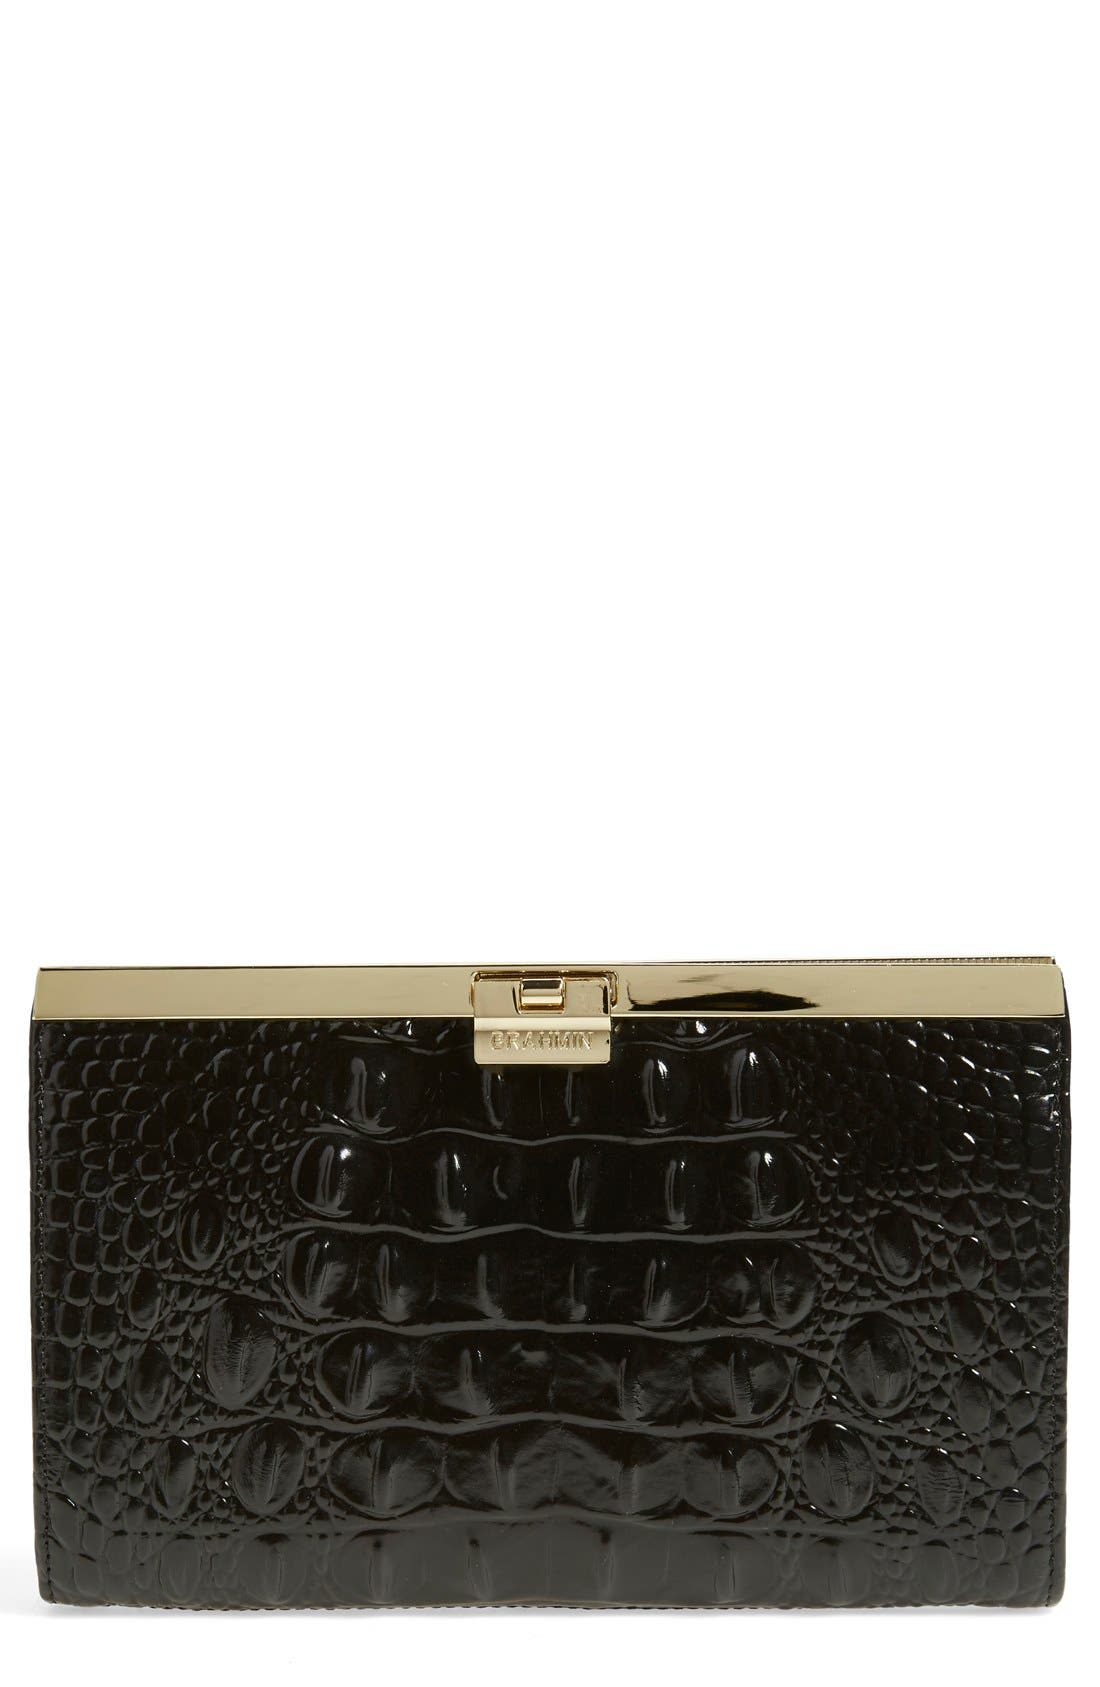 Main Image - Brahmin 'Tillie' Croc Embossed Leather Clutch (Nordstrom Exclusive)